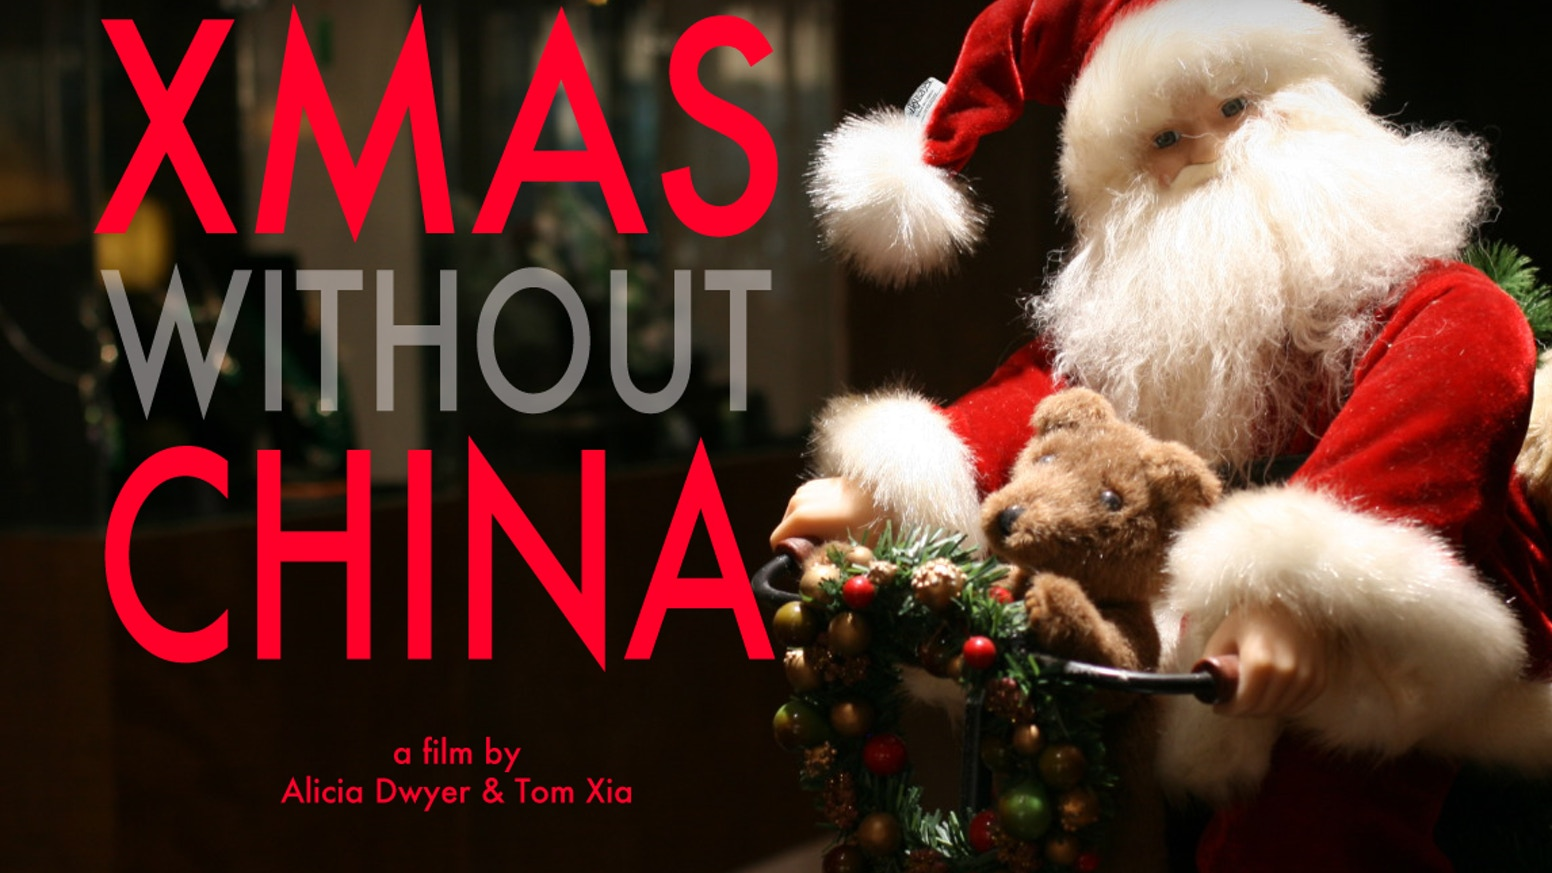 Chinese Christmas.Xmas Without China Documentary By Dwyers Xia Kickstarter